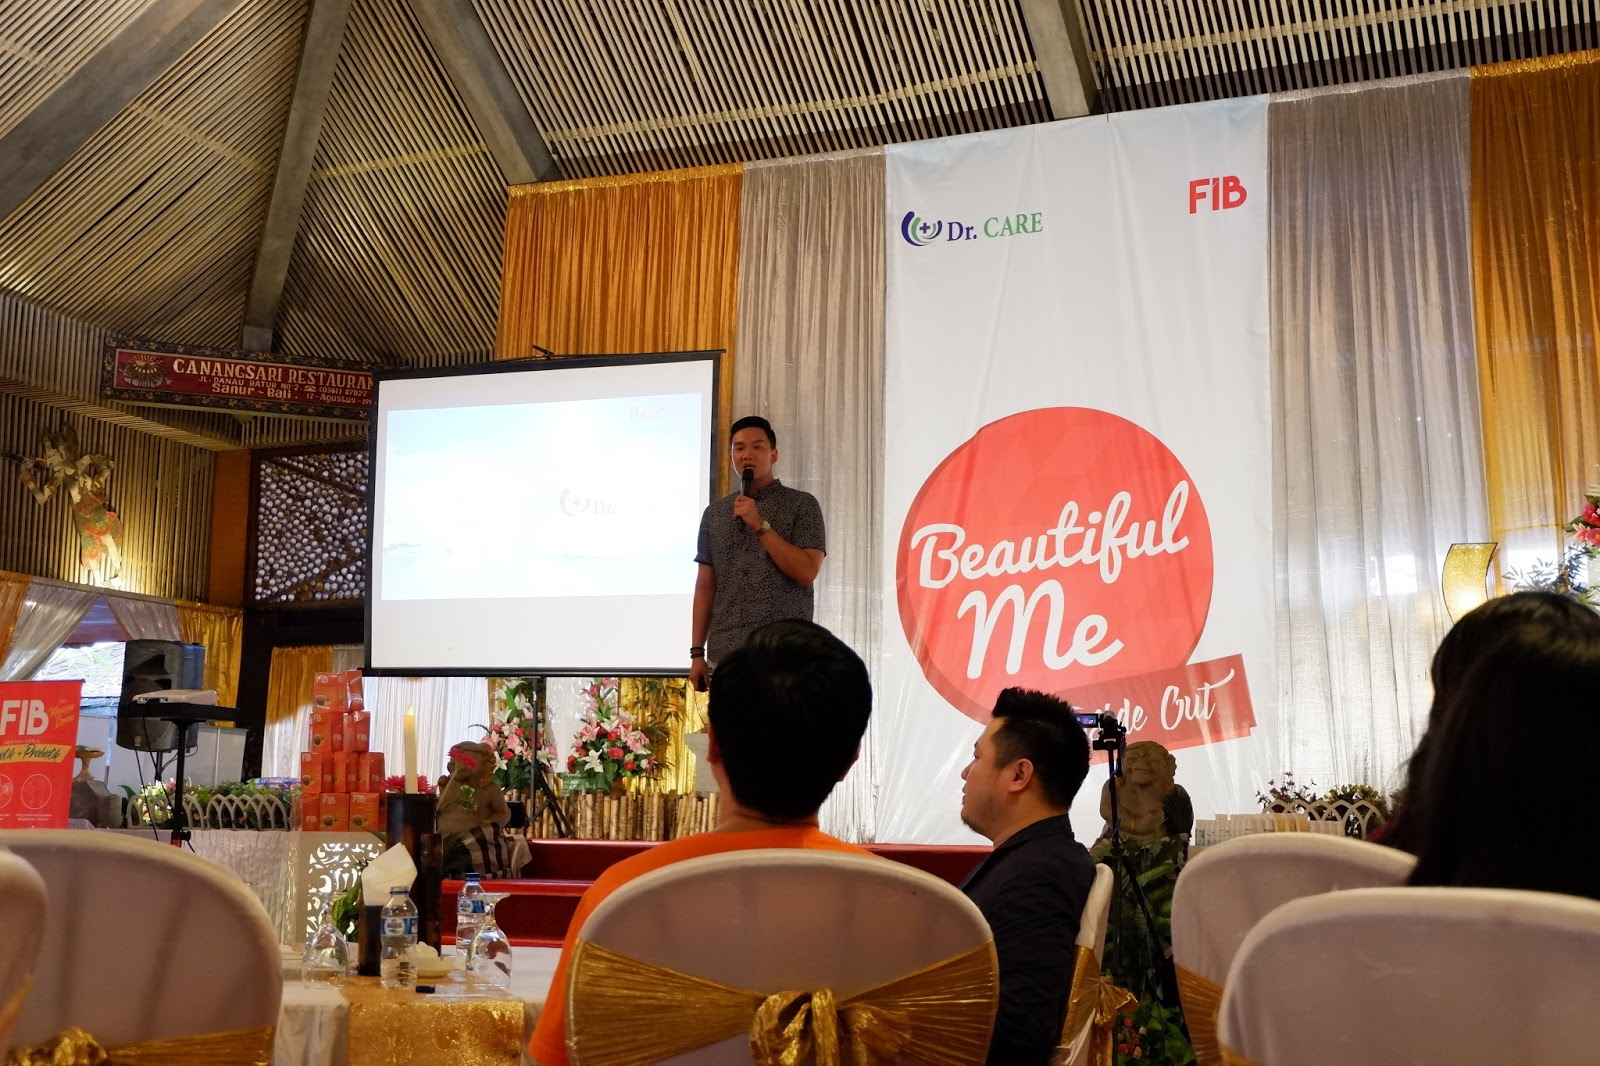 Beautiful Me Inside Out with FIB dan Dr Care